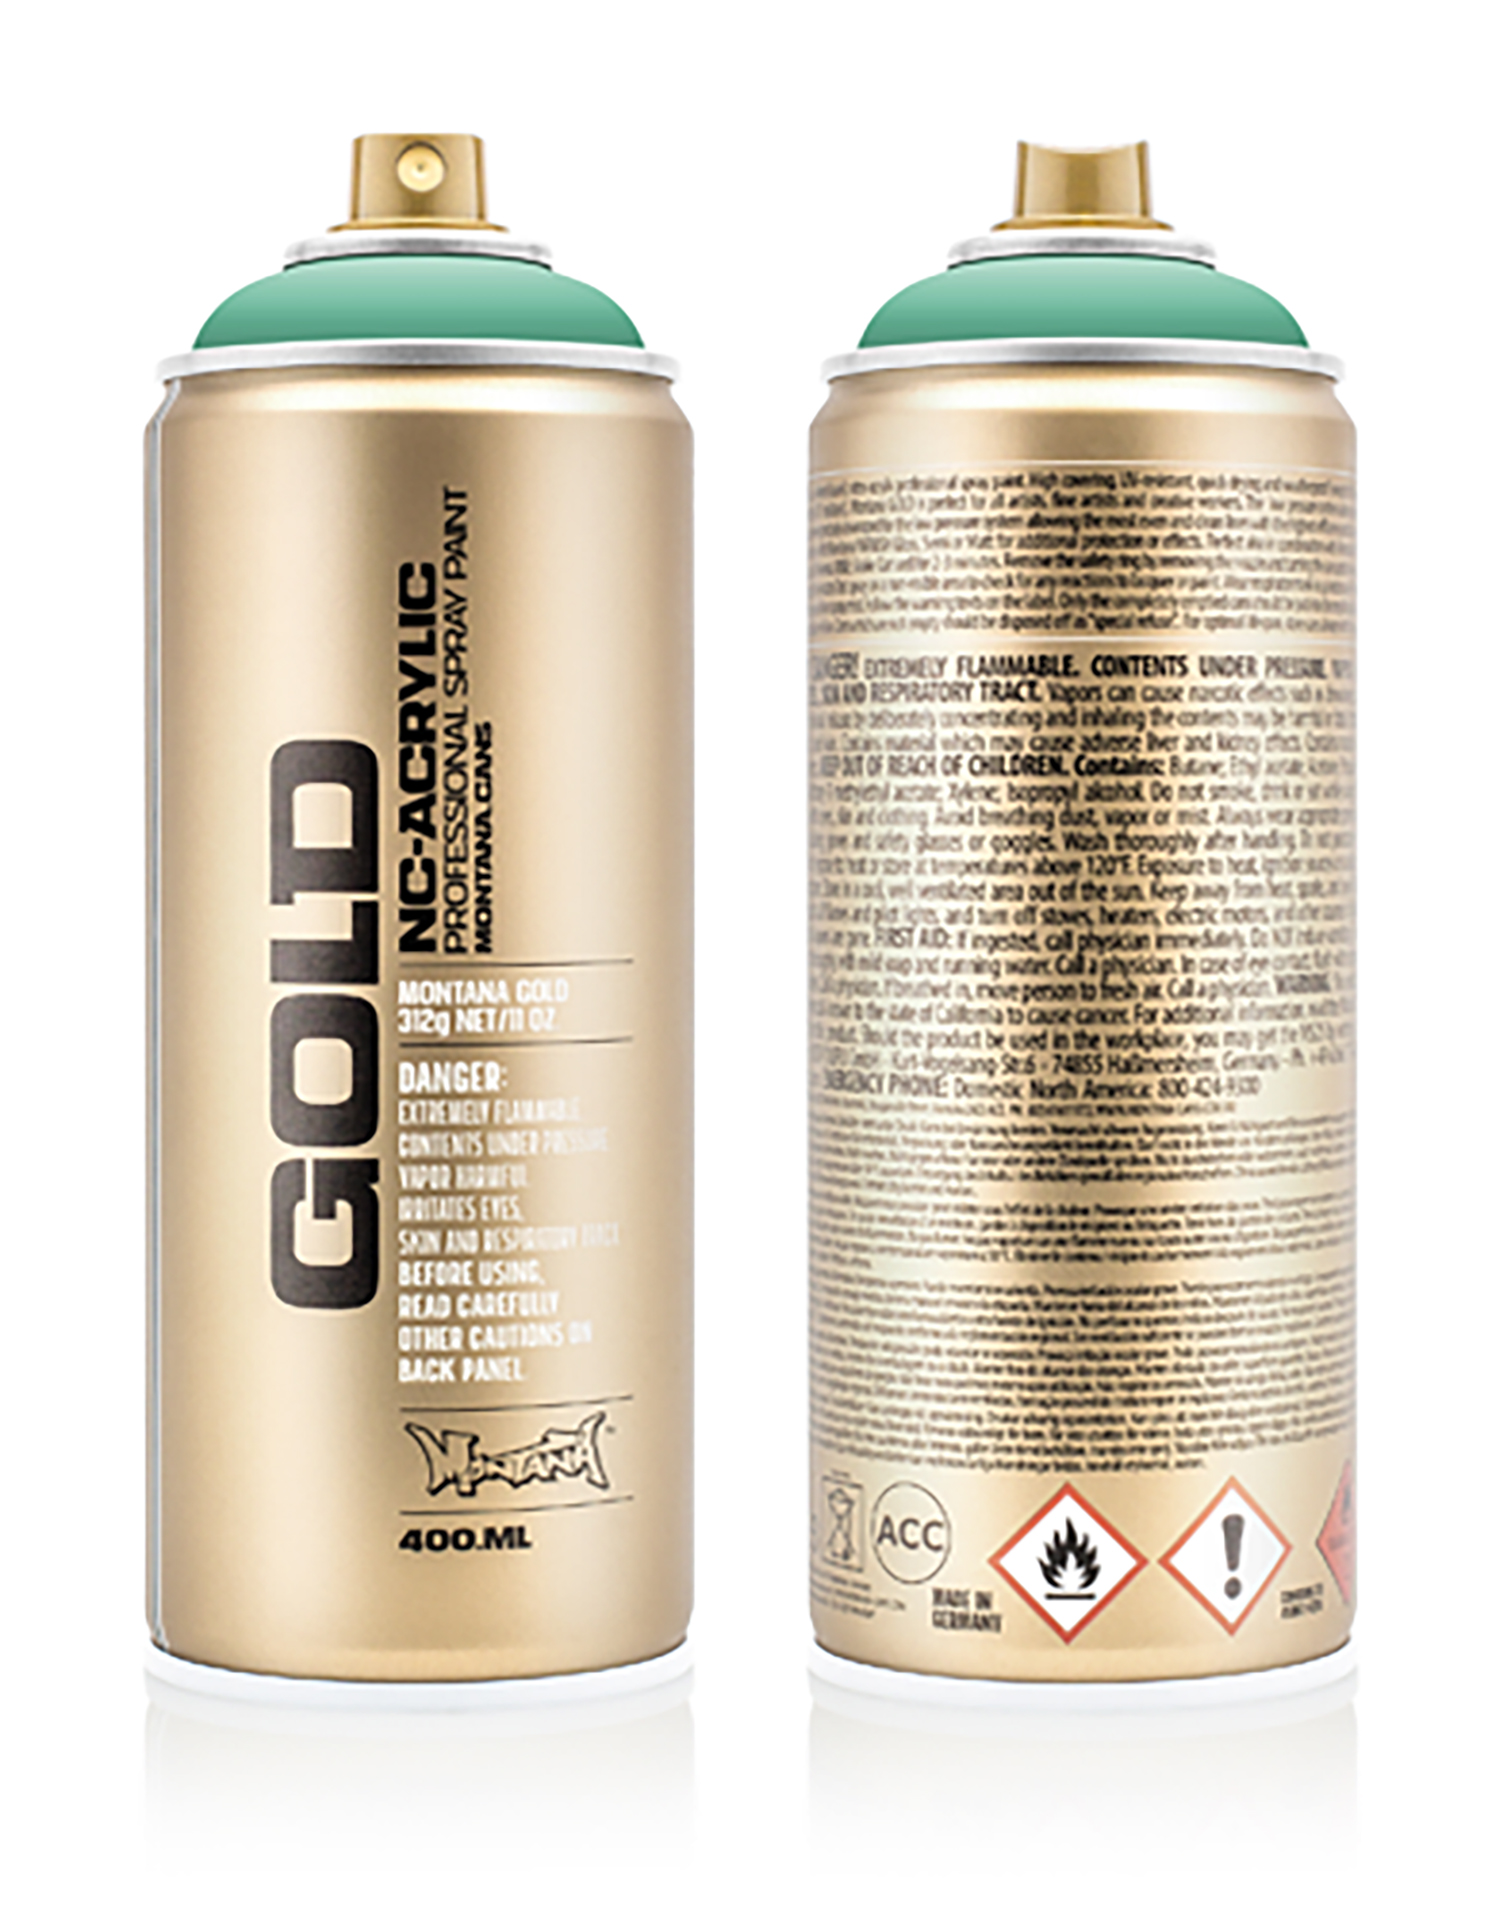 MONTANA-GOLD-SPRAY-400ML-G-6130